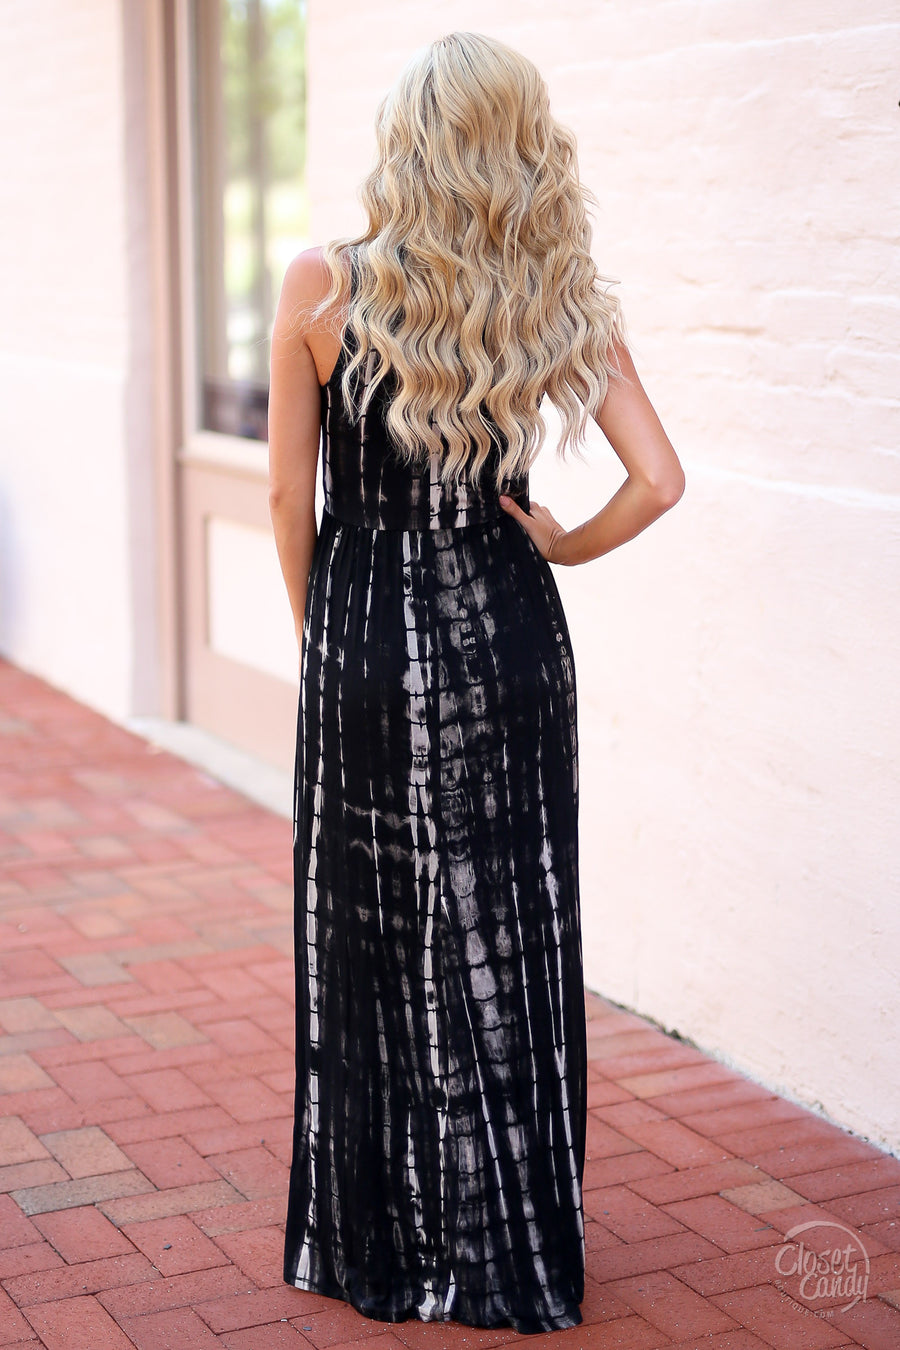 Closet Candy Boutique - cute trendy criss-cross black maxi dress, spring and summer outfit